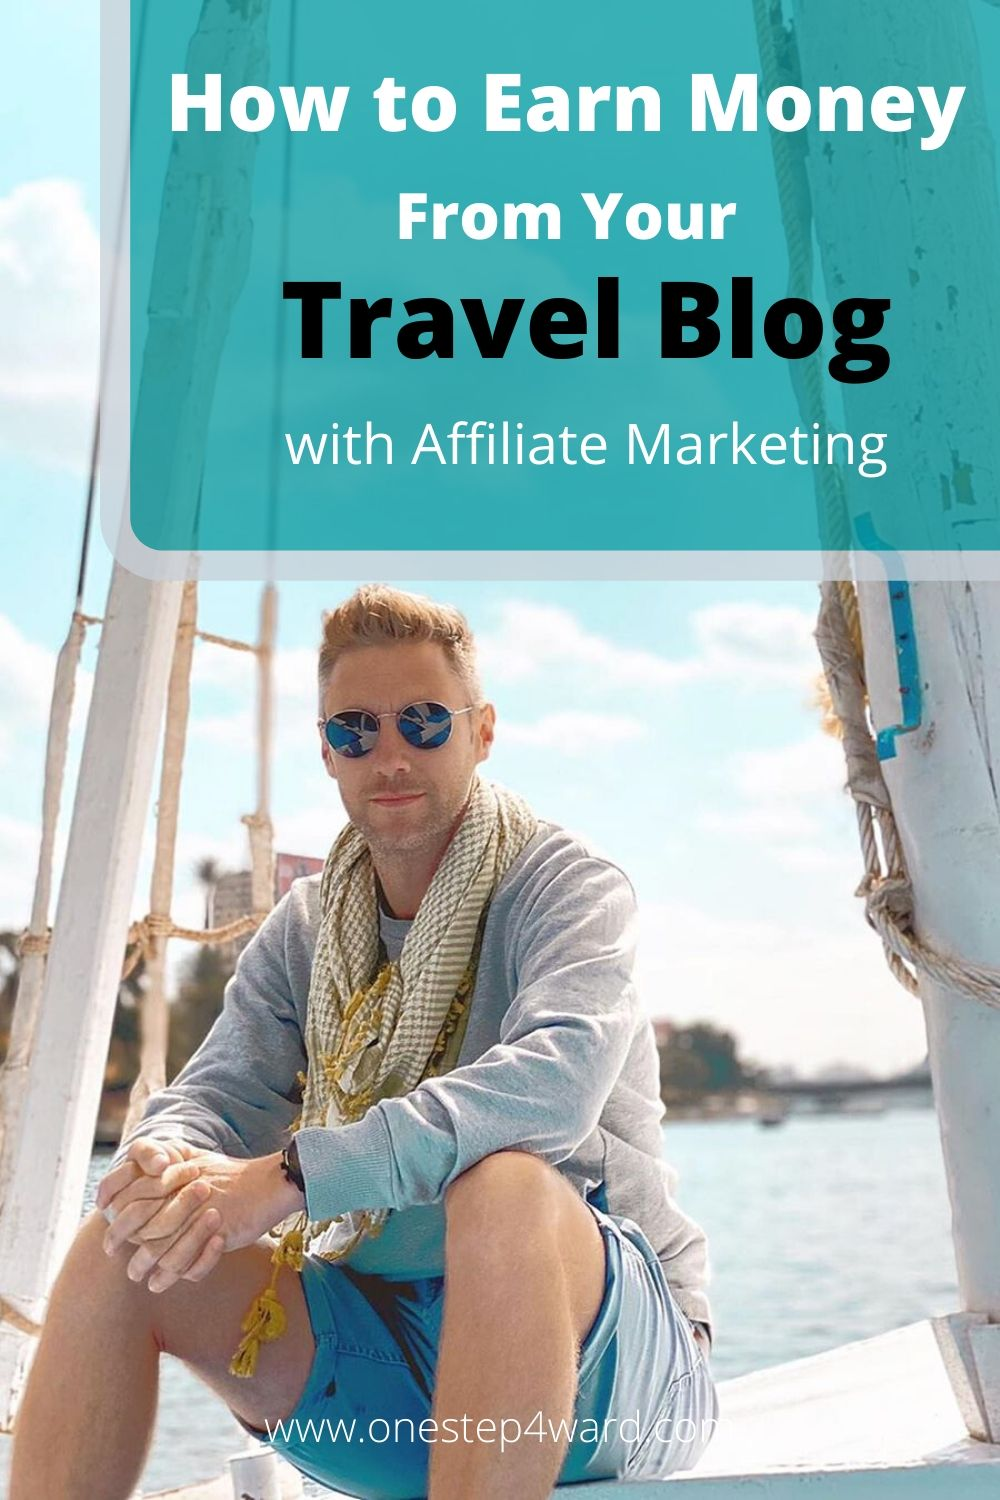 how to earn money from your travel blog with affiliate marketing